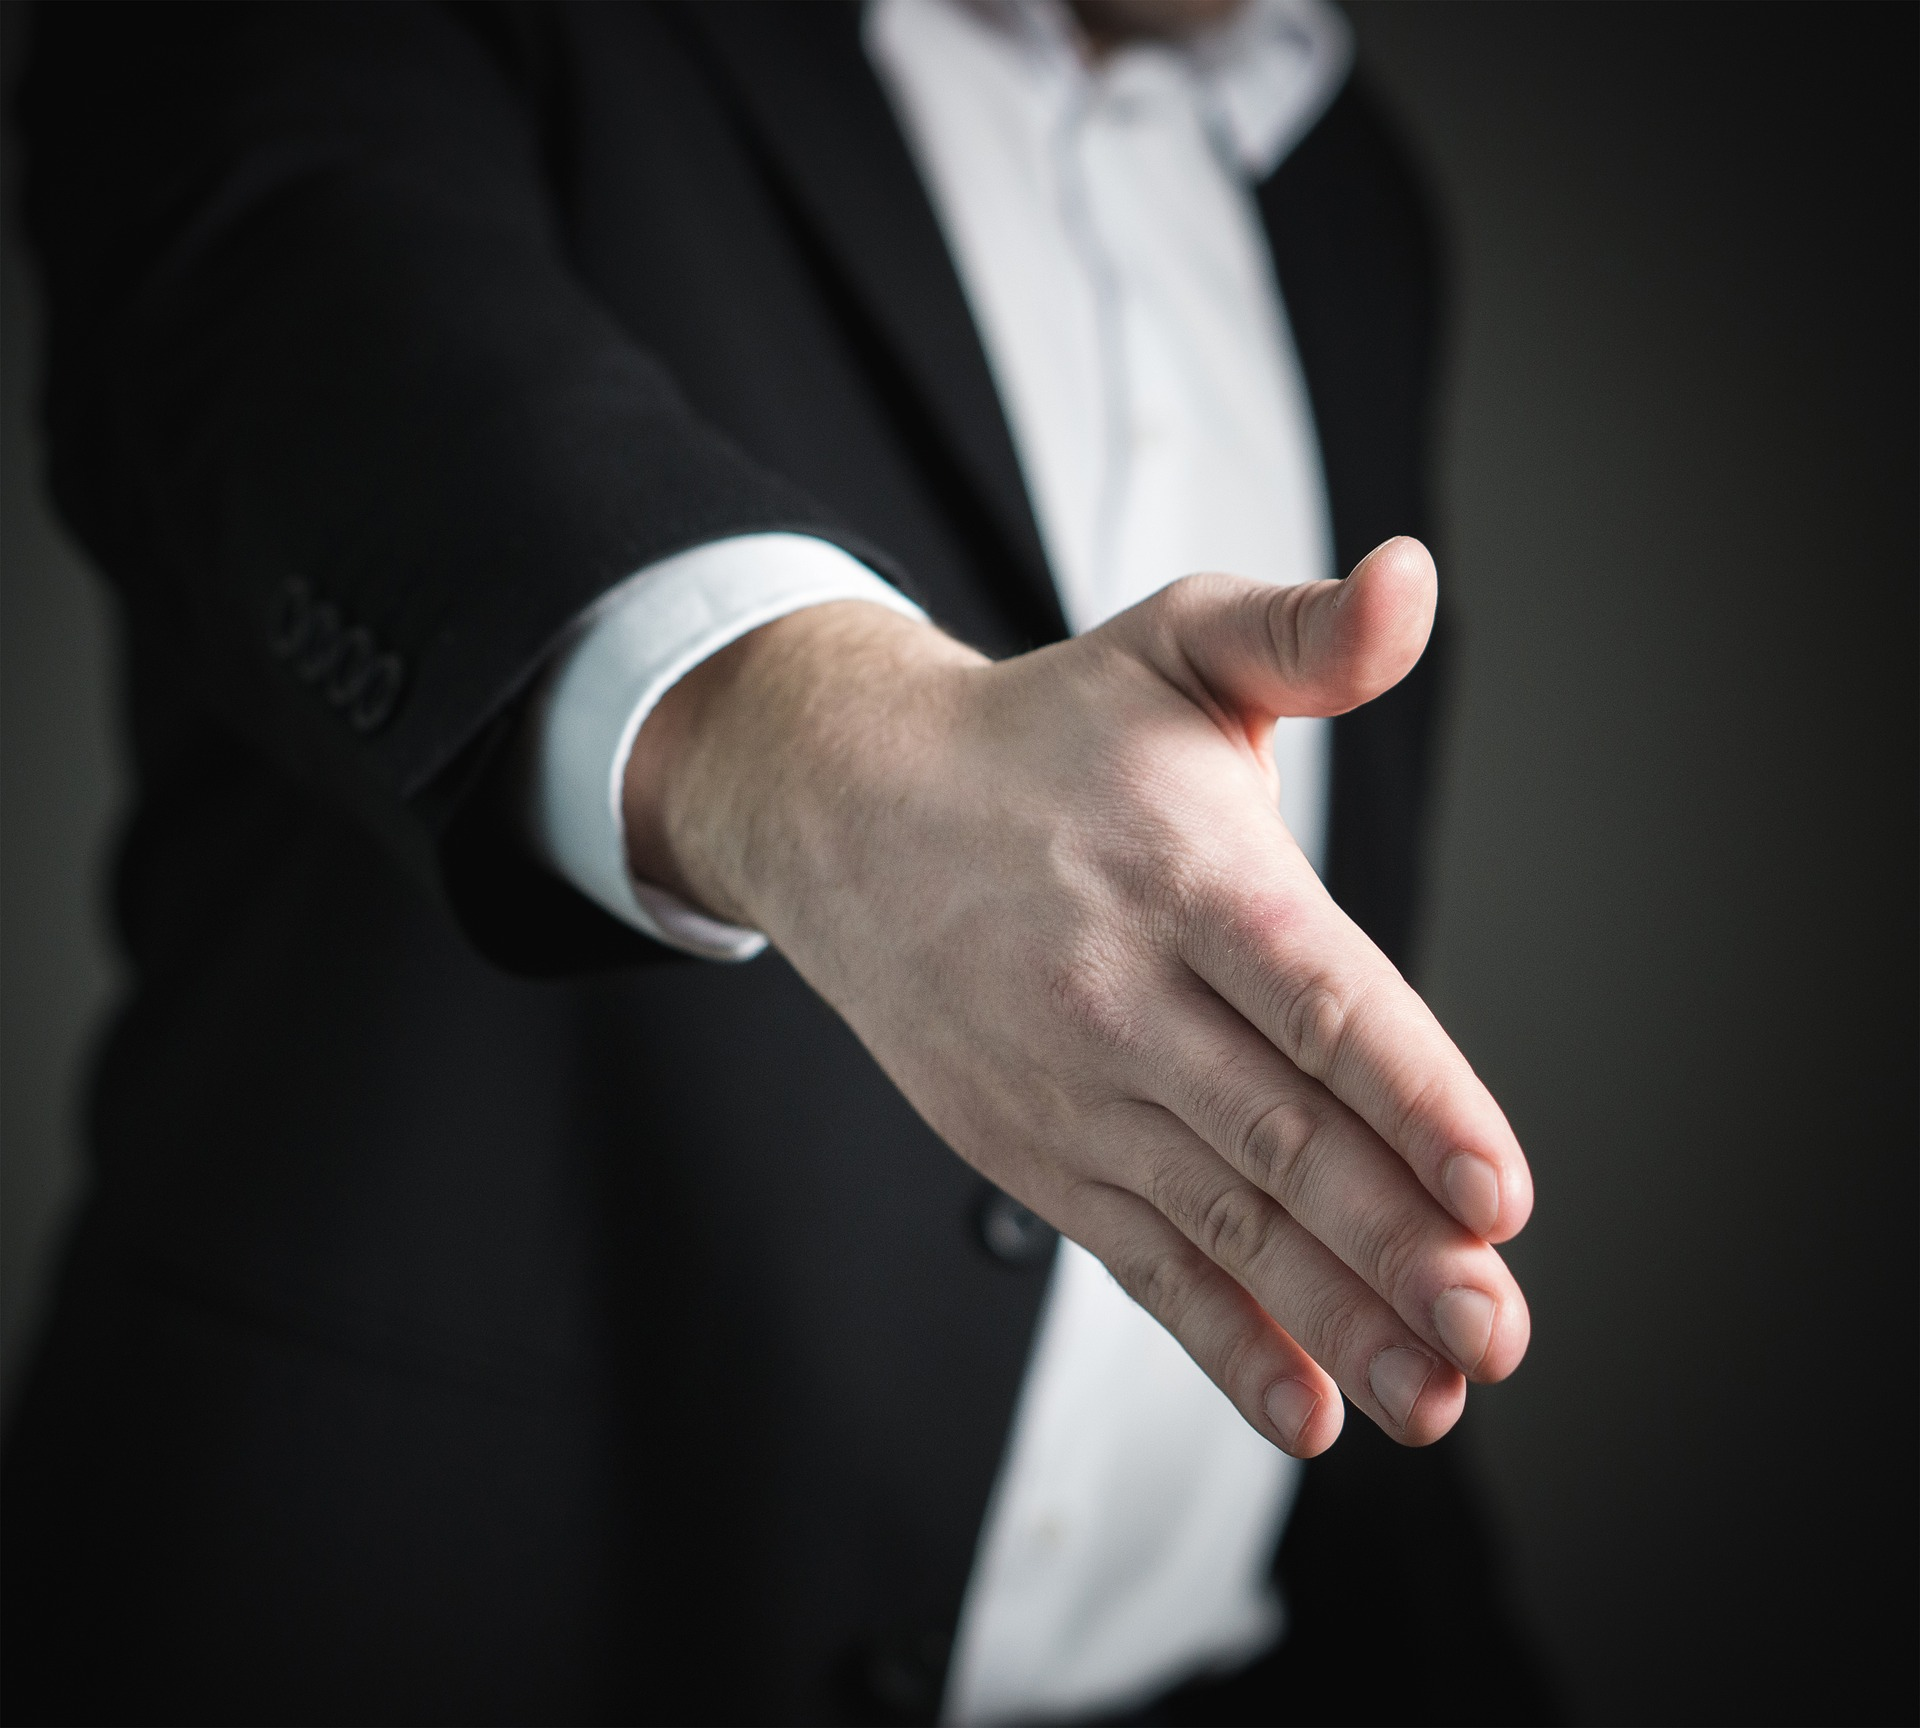 Handshake. represents offer from Chapter 13 Bankruptcy attorney